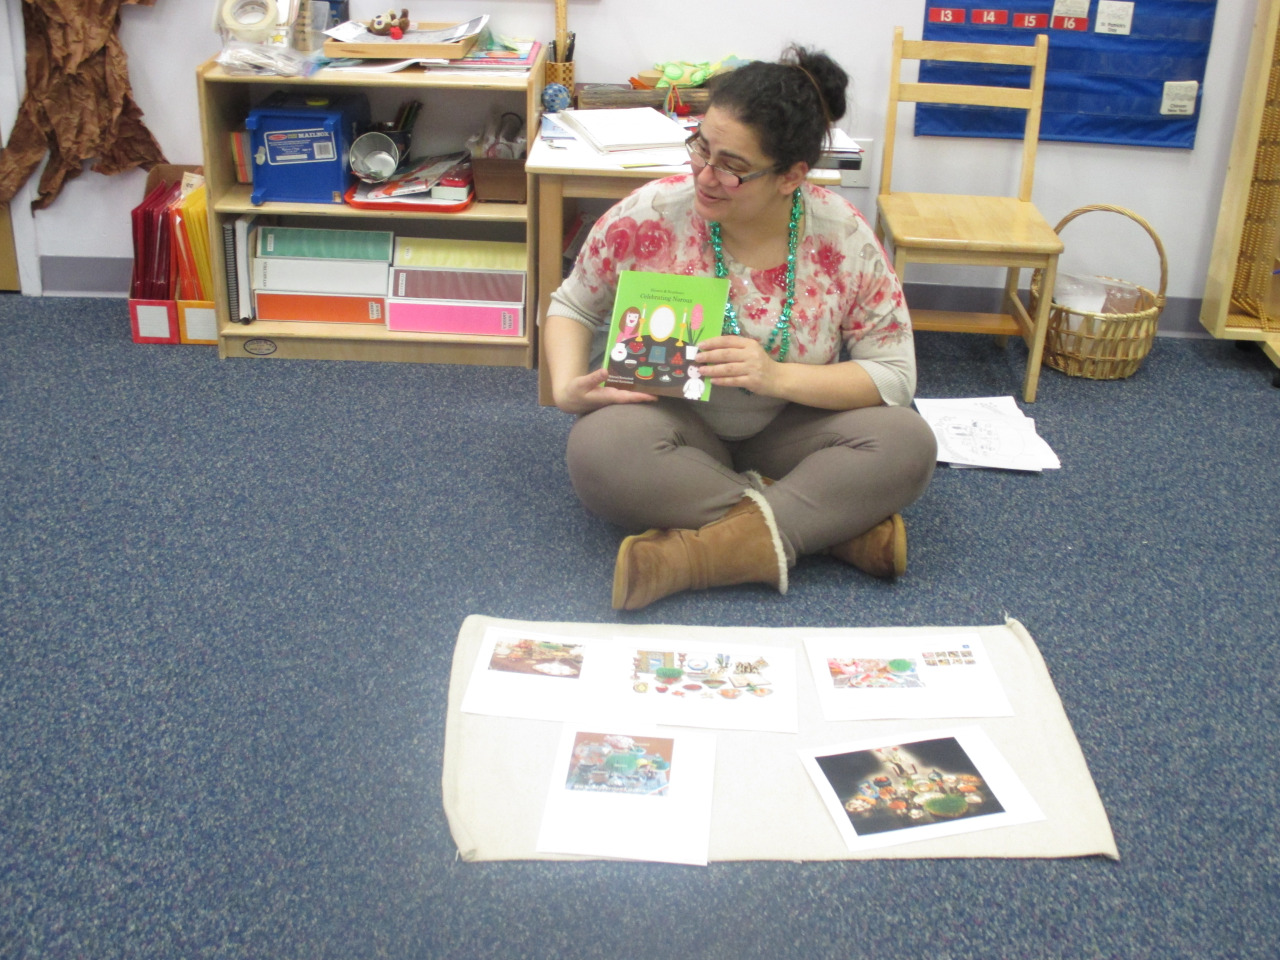 Ms. Nargess celebrated Persian New Year with the Primary 1 class. She read some interesting stories about the celebration and shared some pictures with the children about the food that is set on the table as a feast.